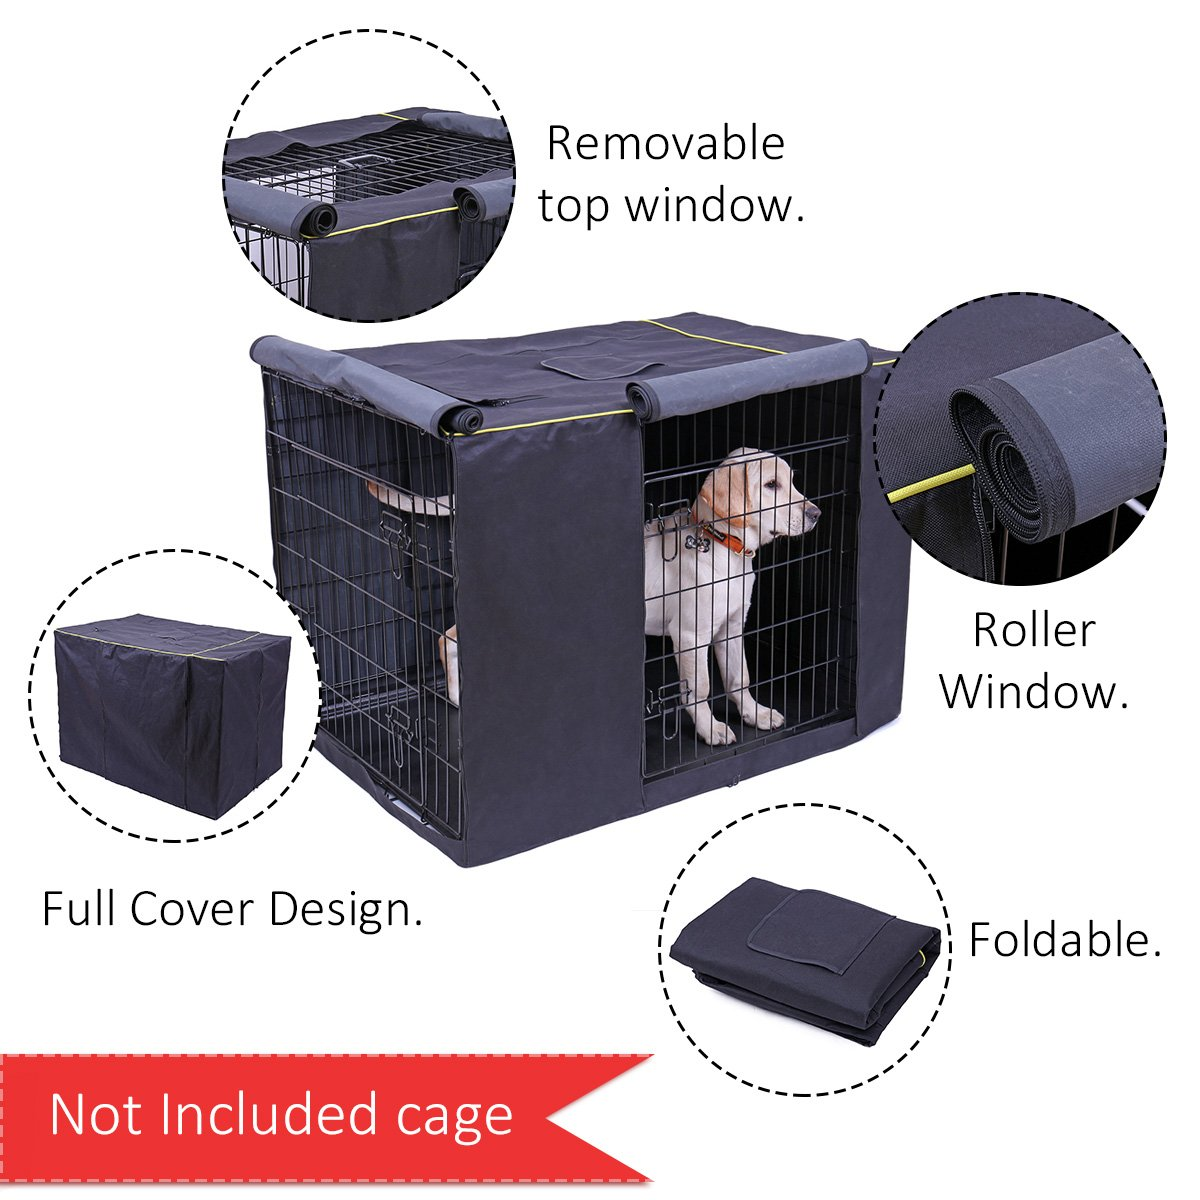 Speedy Pet Waterproof Dog Kennel Covers Durable Windproof Dust-Proof Crate Cover Indoor/Outdoor for Dog Cage Black (2XL(47.6'' x 30.3'' x 32.3''), Black) by Speedy Pet (Image #2)